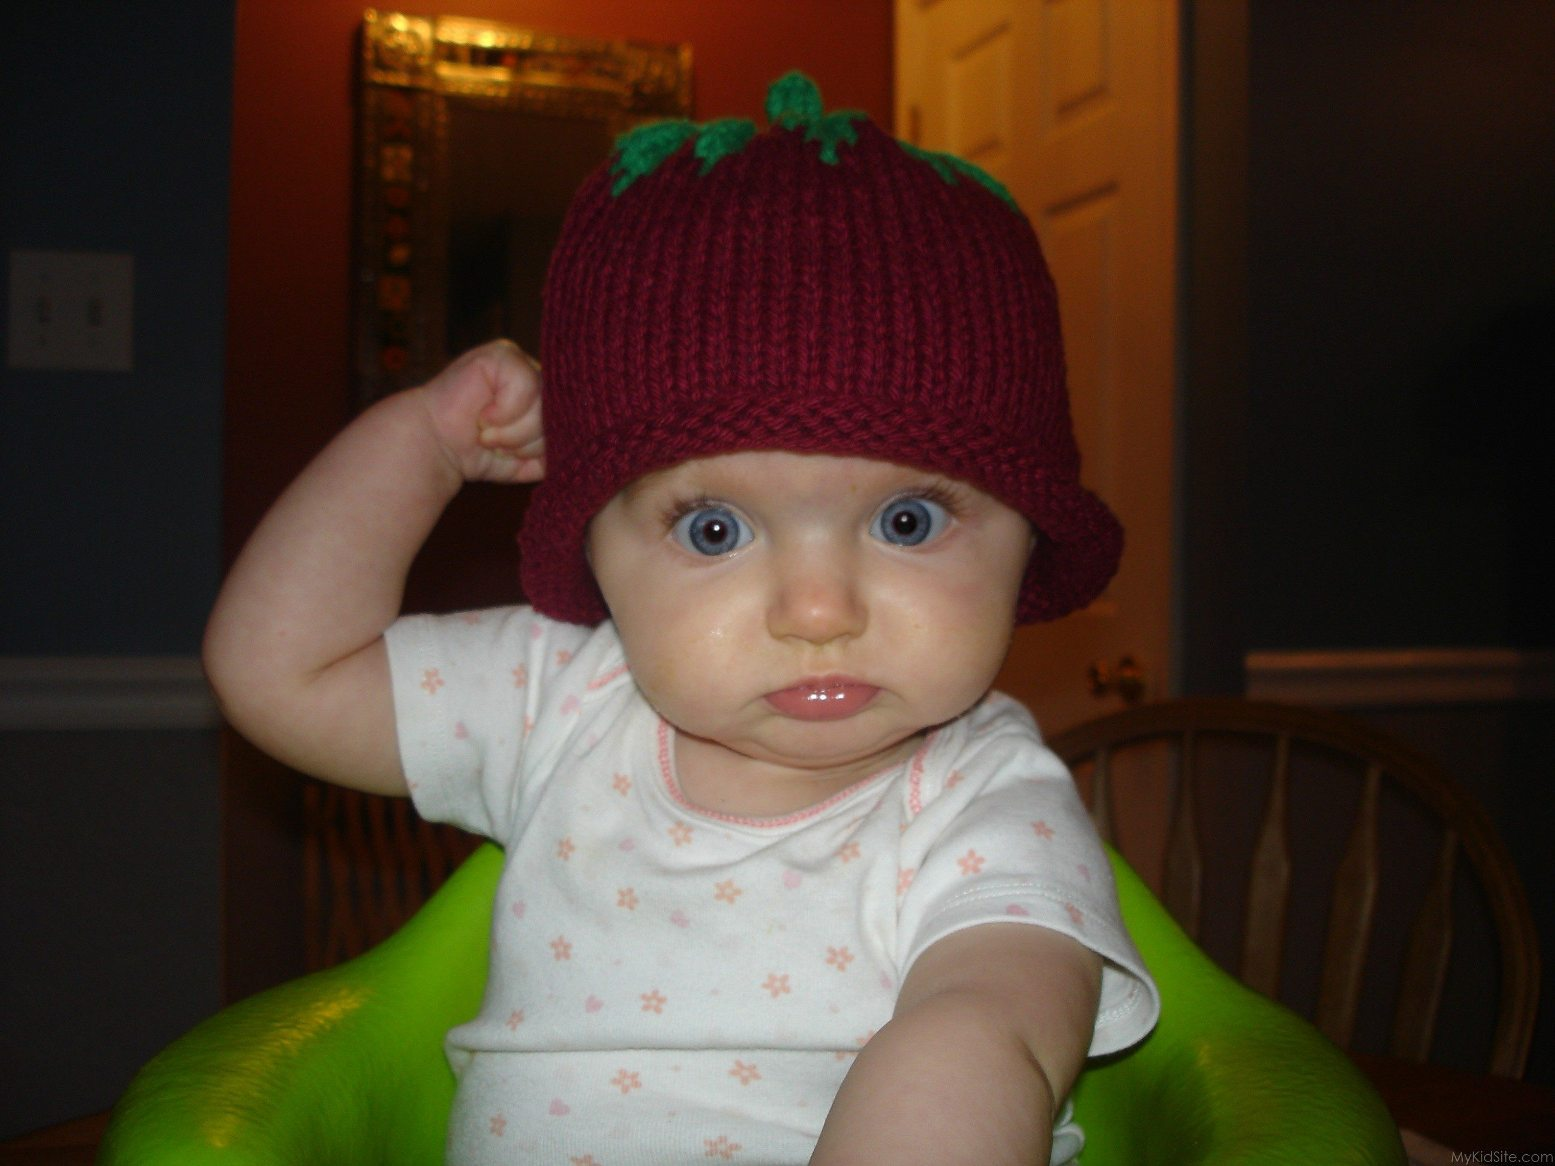 angry baby pictures - DriverLayer Search Engine